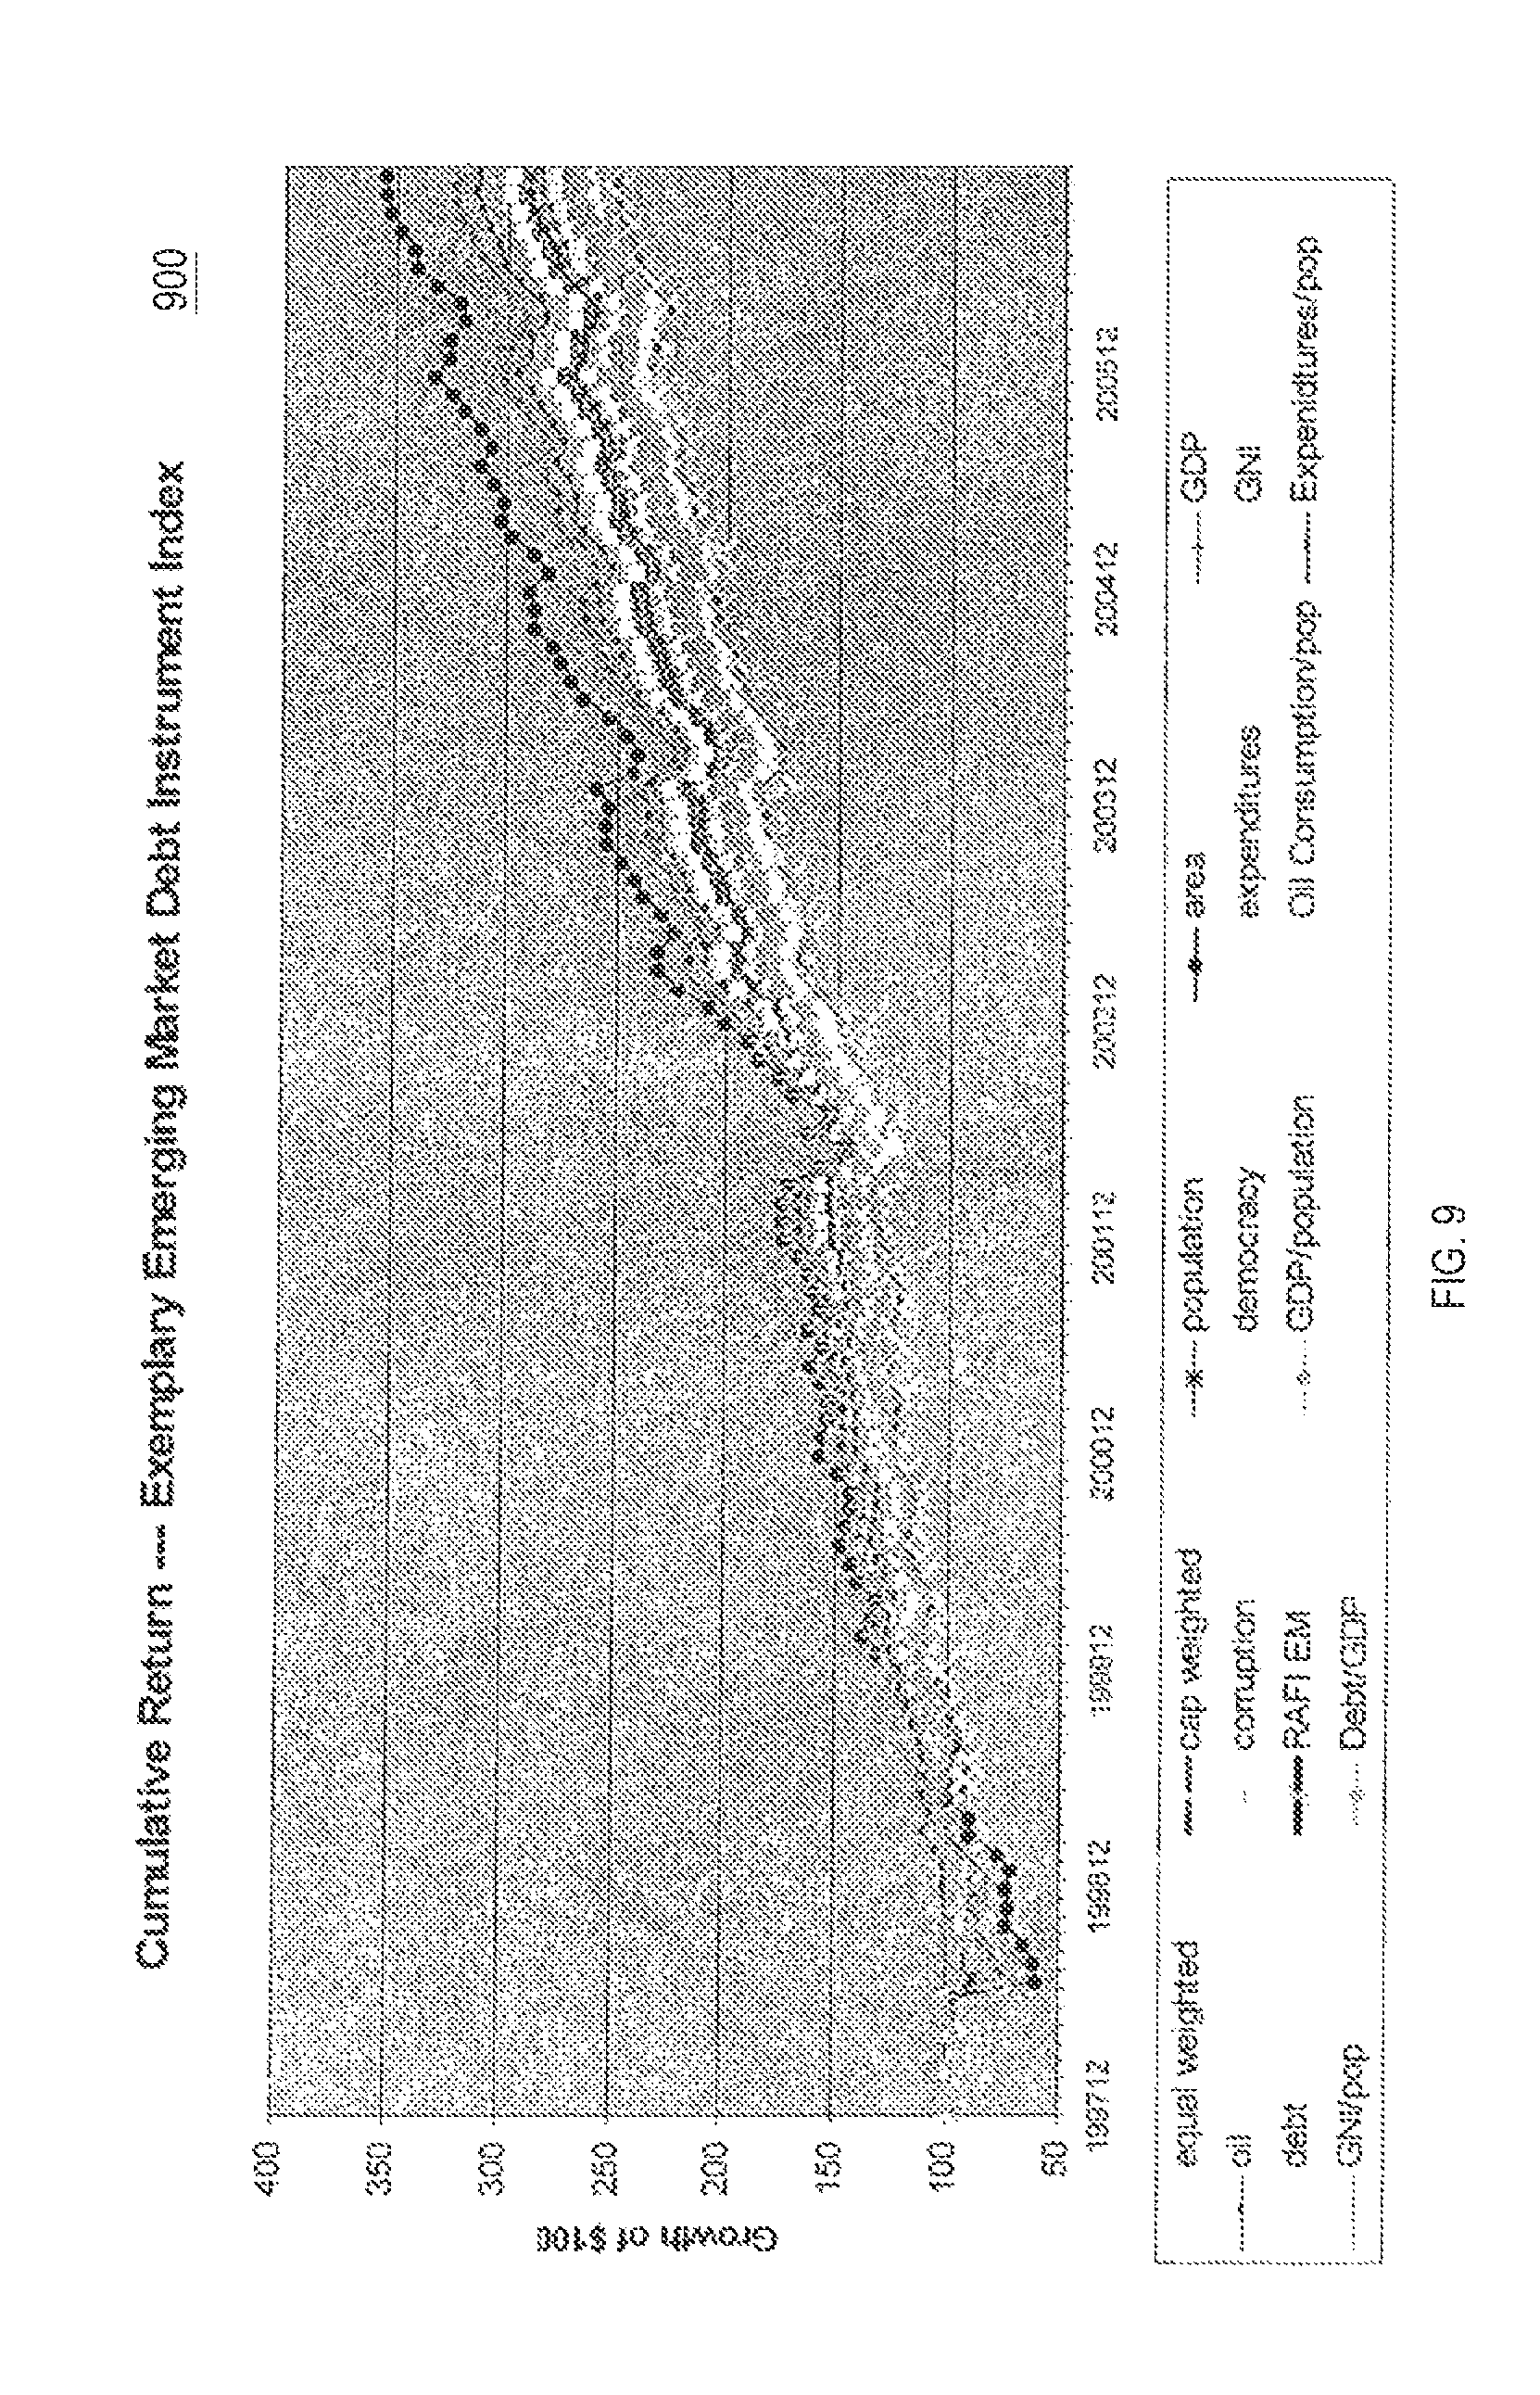 Patent Us8694402 Using Accounting Data Based Indexing To Create A Wiring Diagram 48v Club Car Parts Drawing